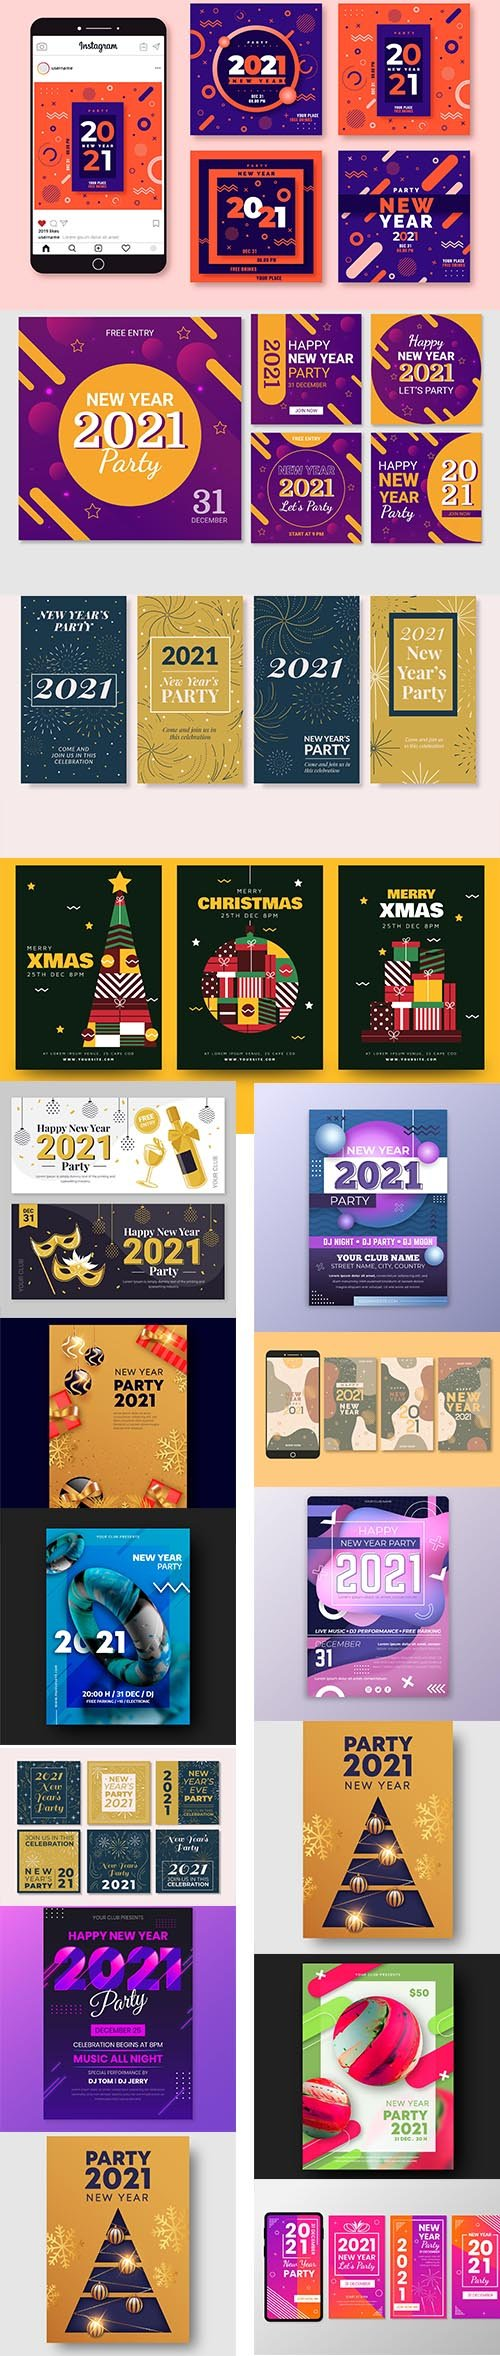 New year 2021 party instagram posts and new year party flyer template